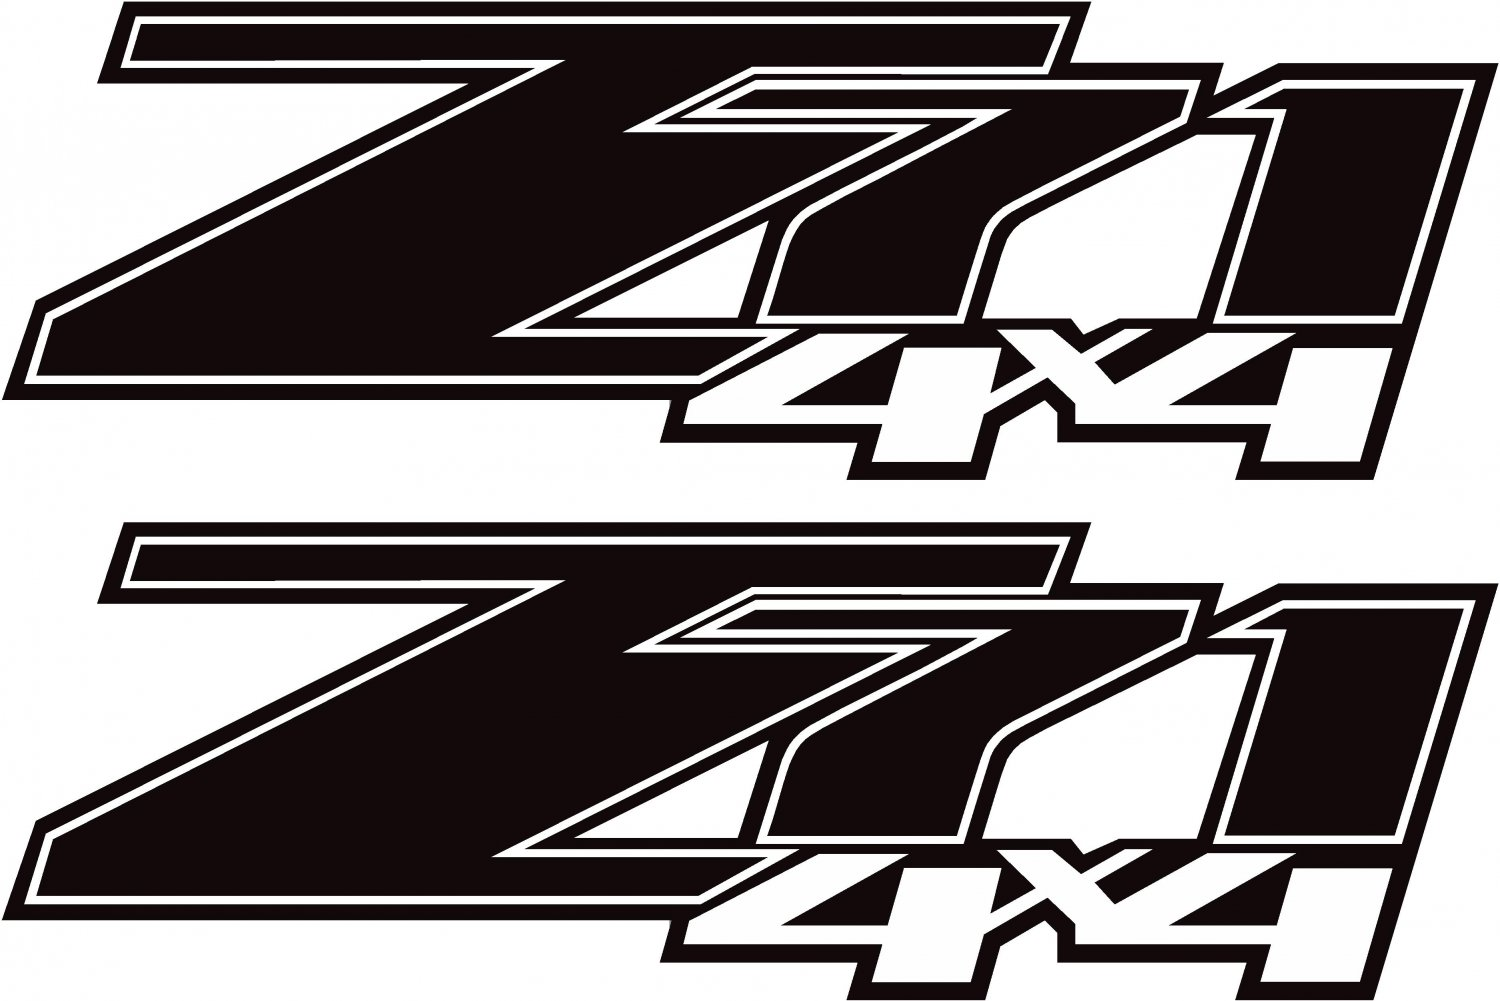 Chevy Gmc Z71 Off Road 4x4 Truck Decal Sticker X2